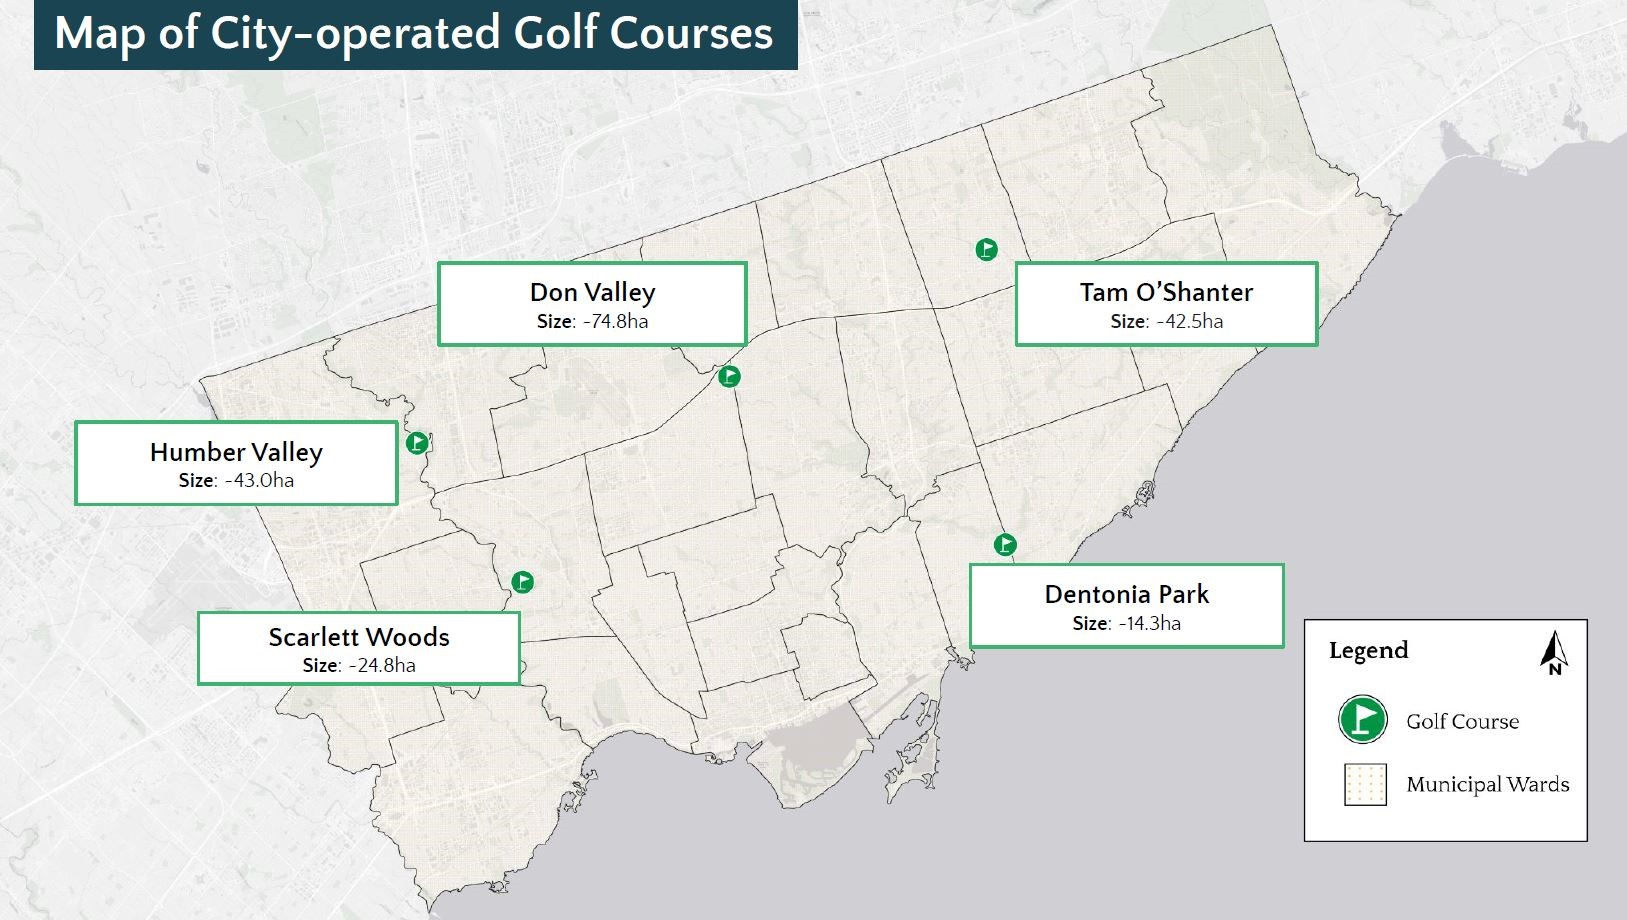 A map of Toronto which shows the five city-operated golf courses and their size. Each location is marked by a green circle and is organized as a grid by municipal ward. Locations from east to west include Tam O'Shanter (42.5ha), Dentonia Park (14.5ha), Don Valley (74.8ha), Scarlett Woods (24.8ha) and Humber Valley (43.0ha).